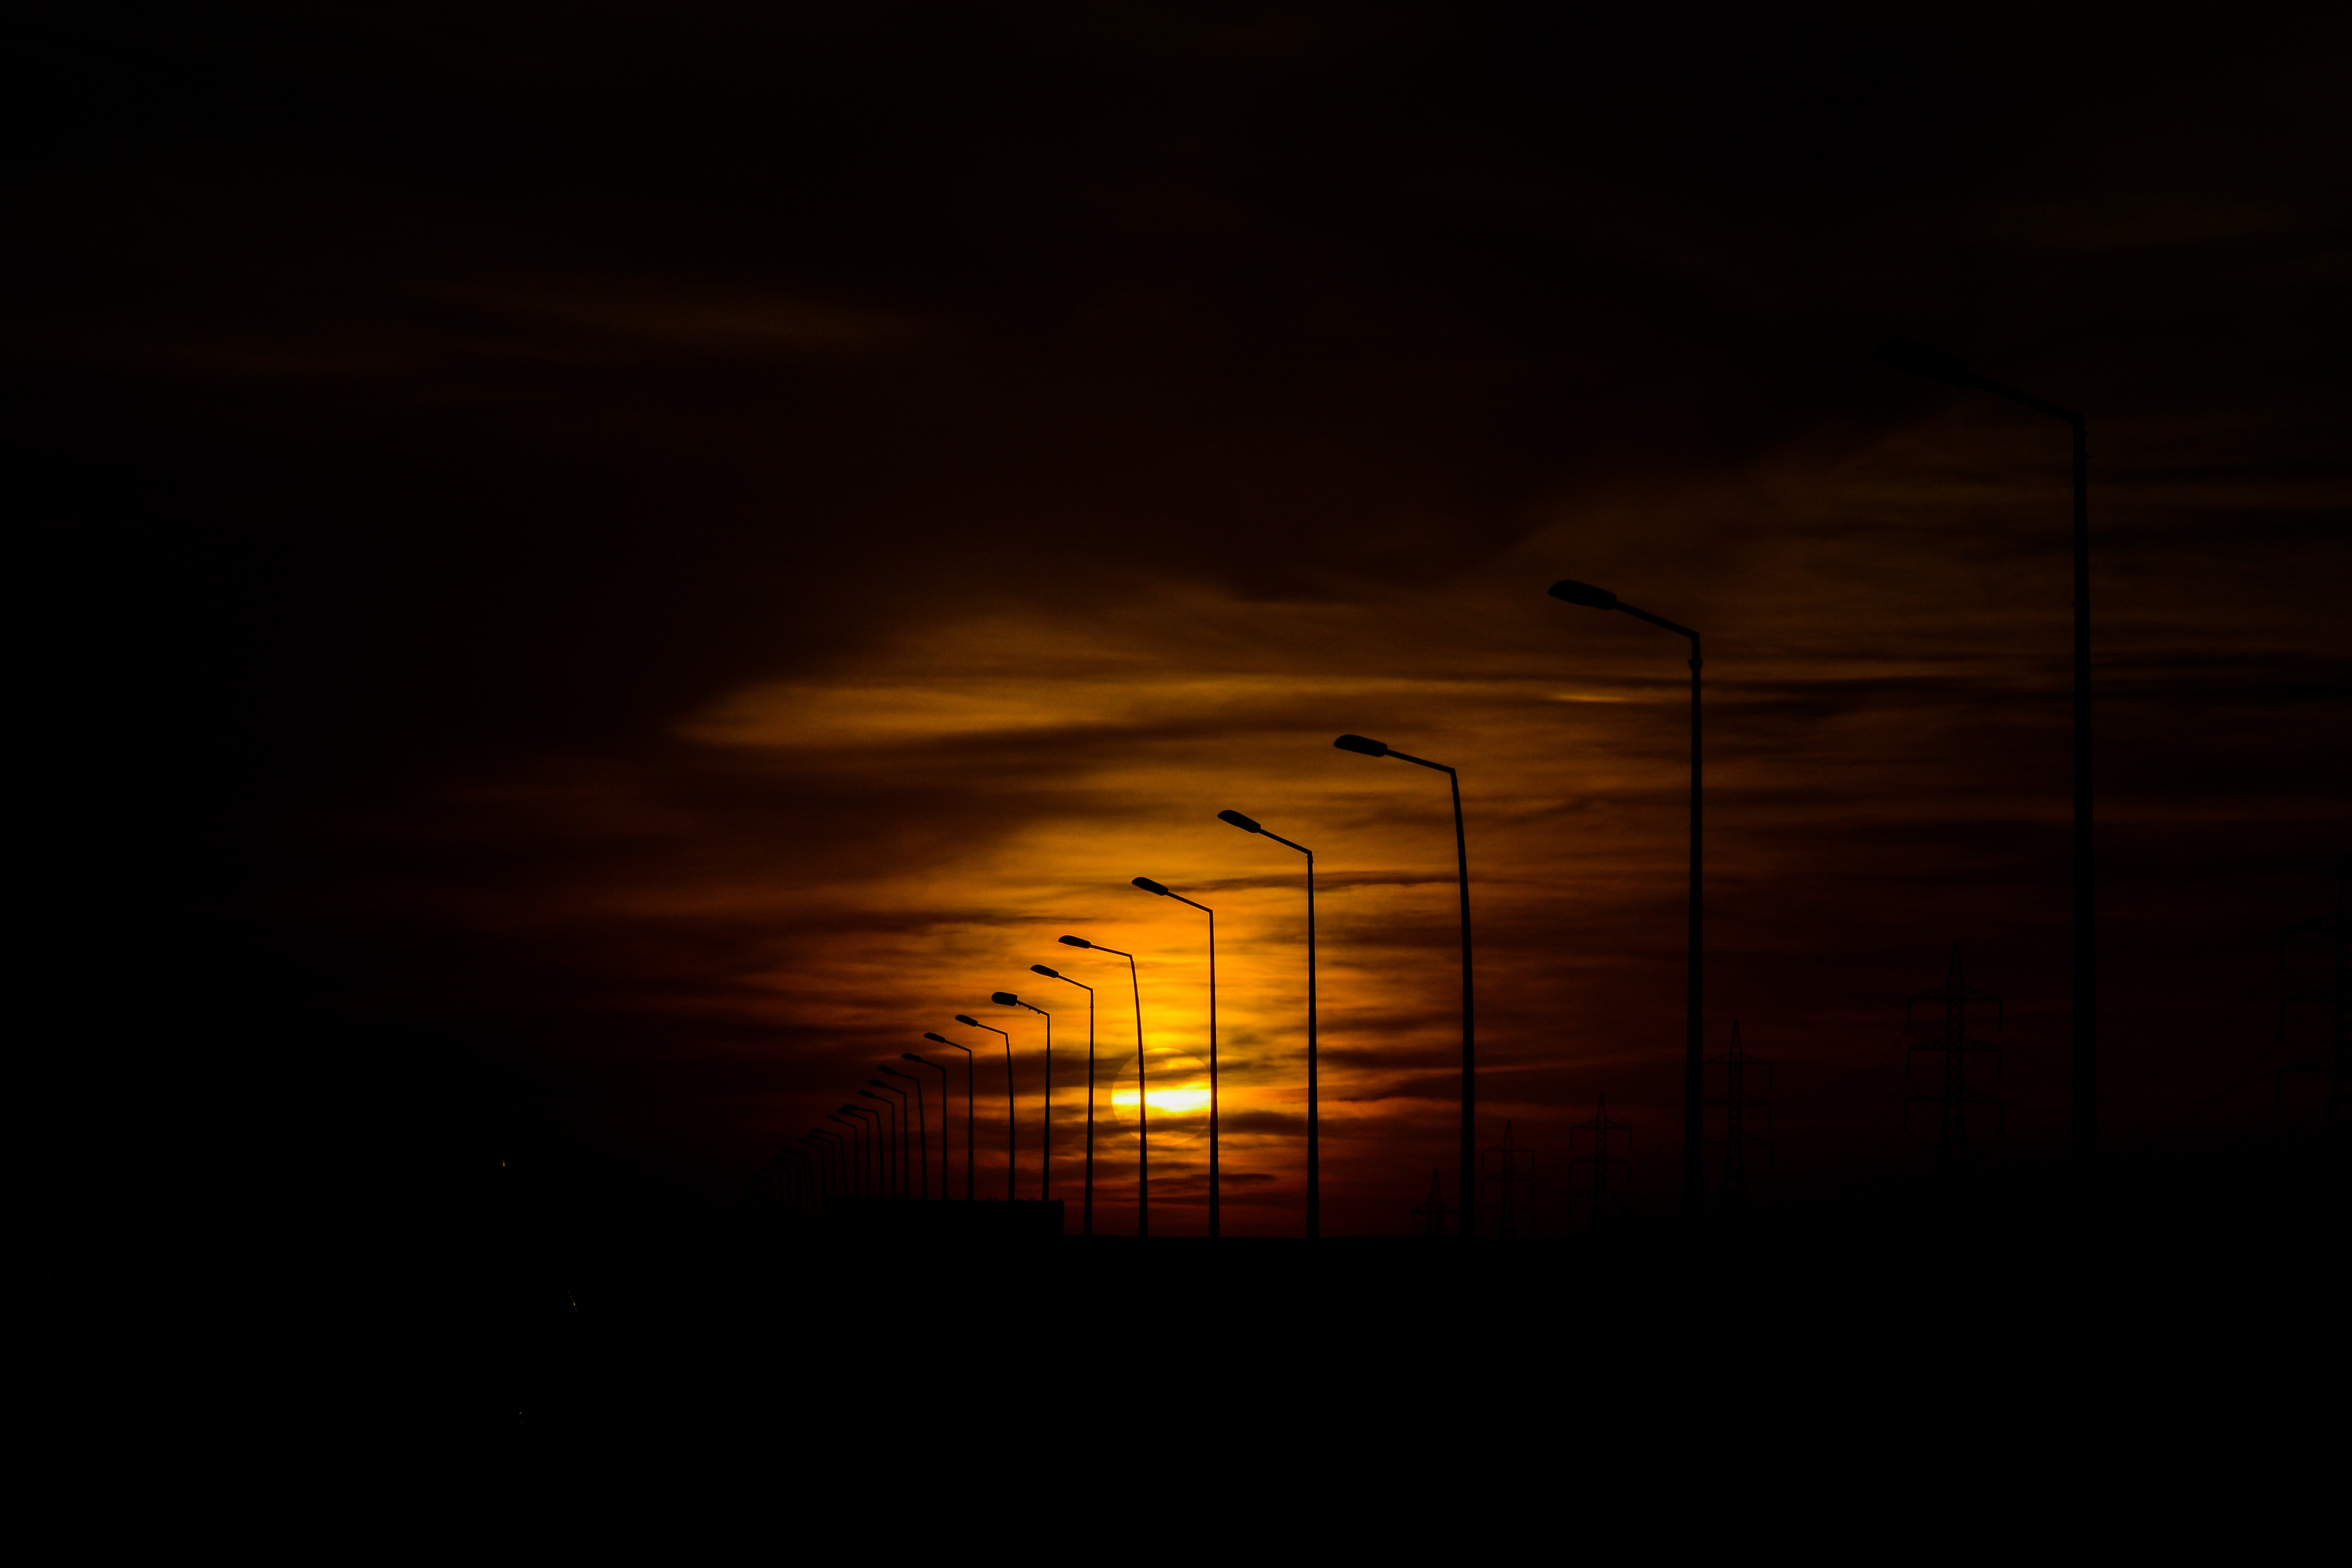 silhouette street lights during sunset